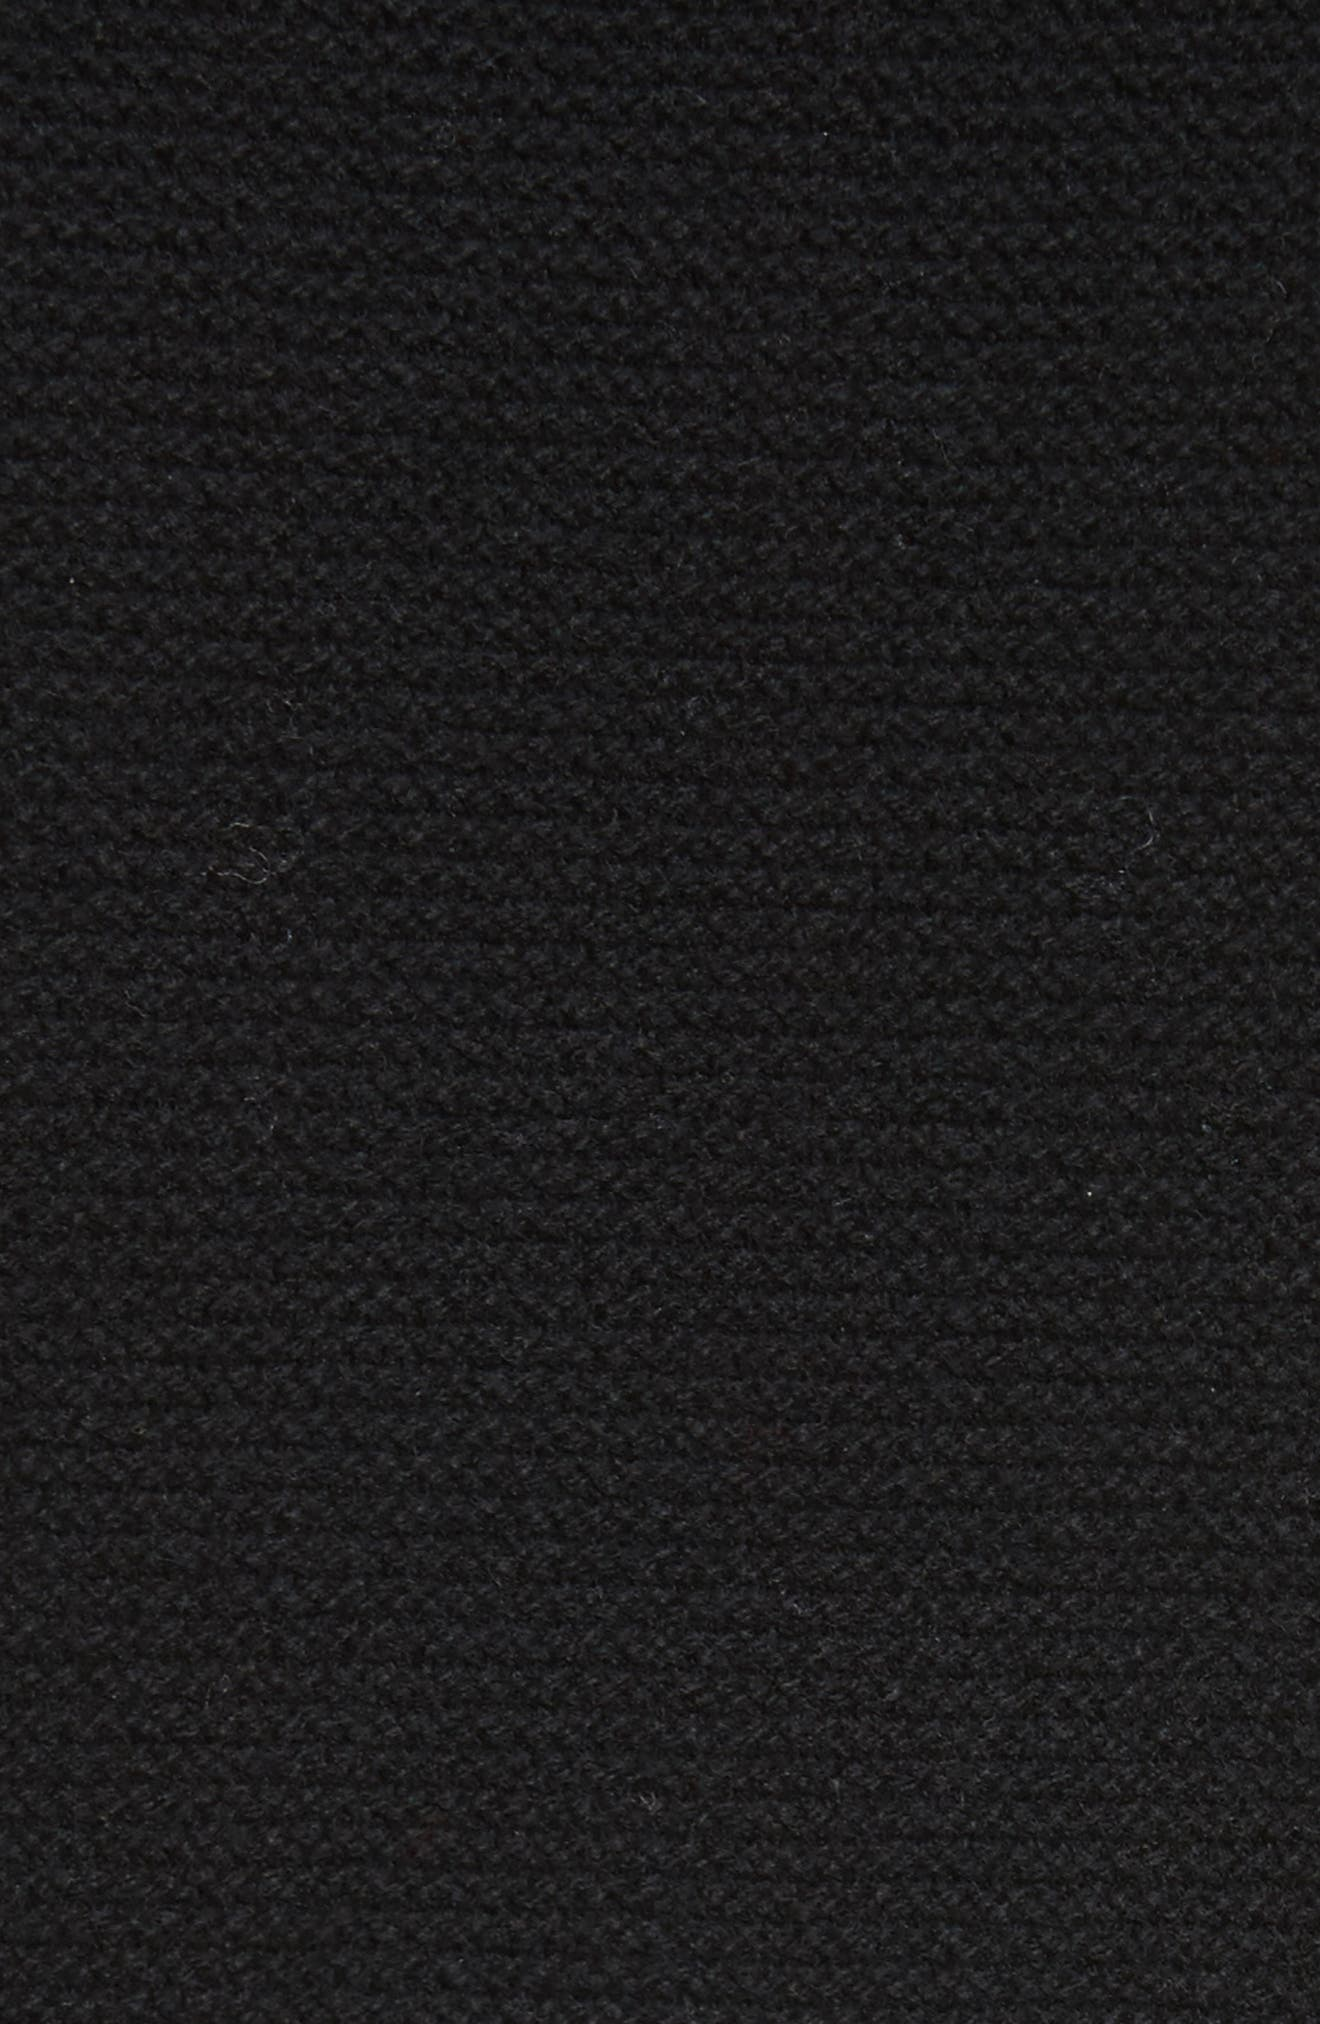 Chandler Wool-Blend Turtleneck Sweater,                             Alternate thumbnail 5, color,                             001